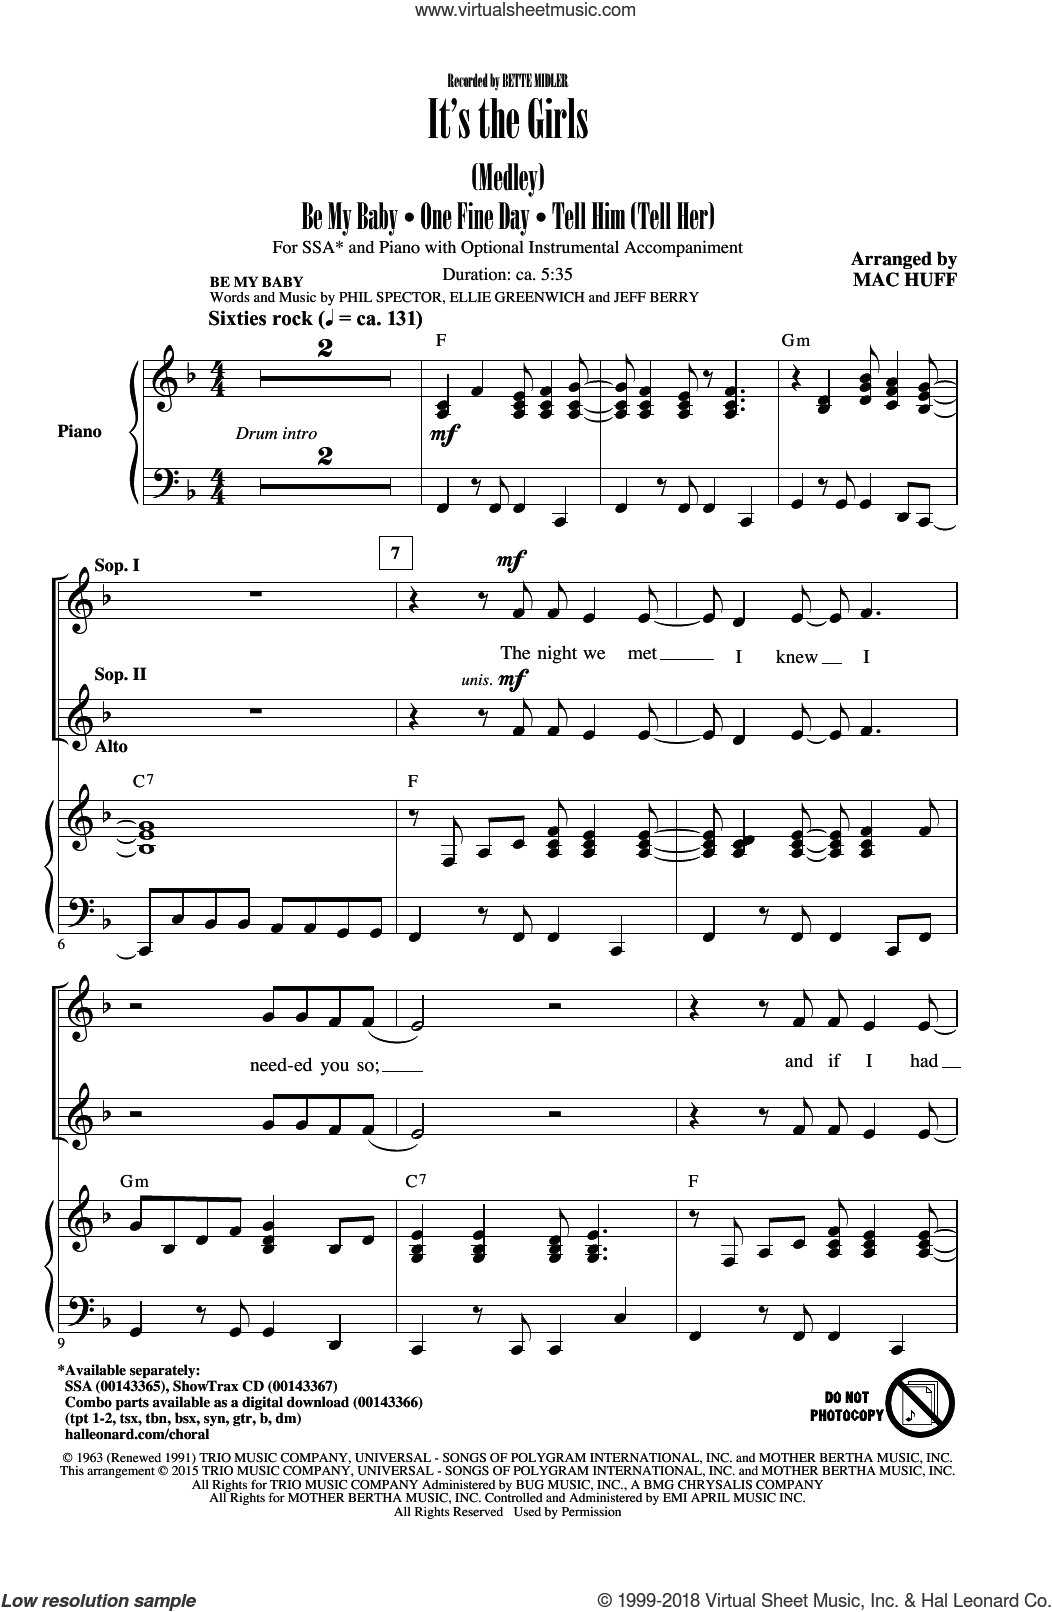 Be My Baby sheet music for choir (soprano voice, alto voice, choir) by Phil Spector, Andy Kim, Bette Midler, Michael BublA�A�, Michael Buble, Ellie Greenwich, Jeff Barry and Mac Huff. Score Image Preview.